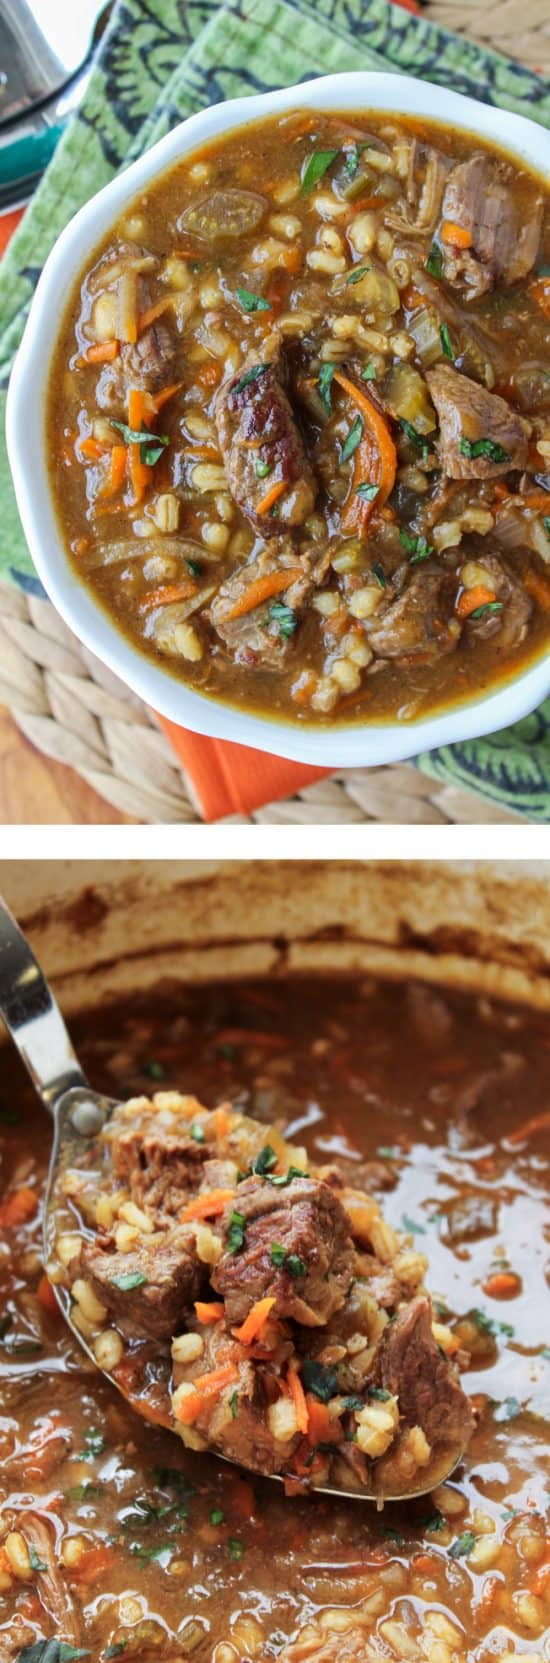 Beef Barley Soup from The Food Charlatan